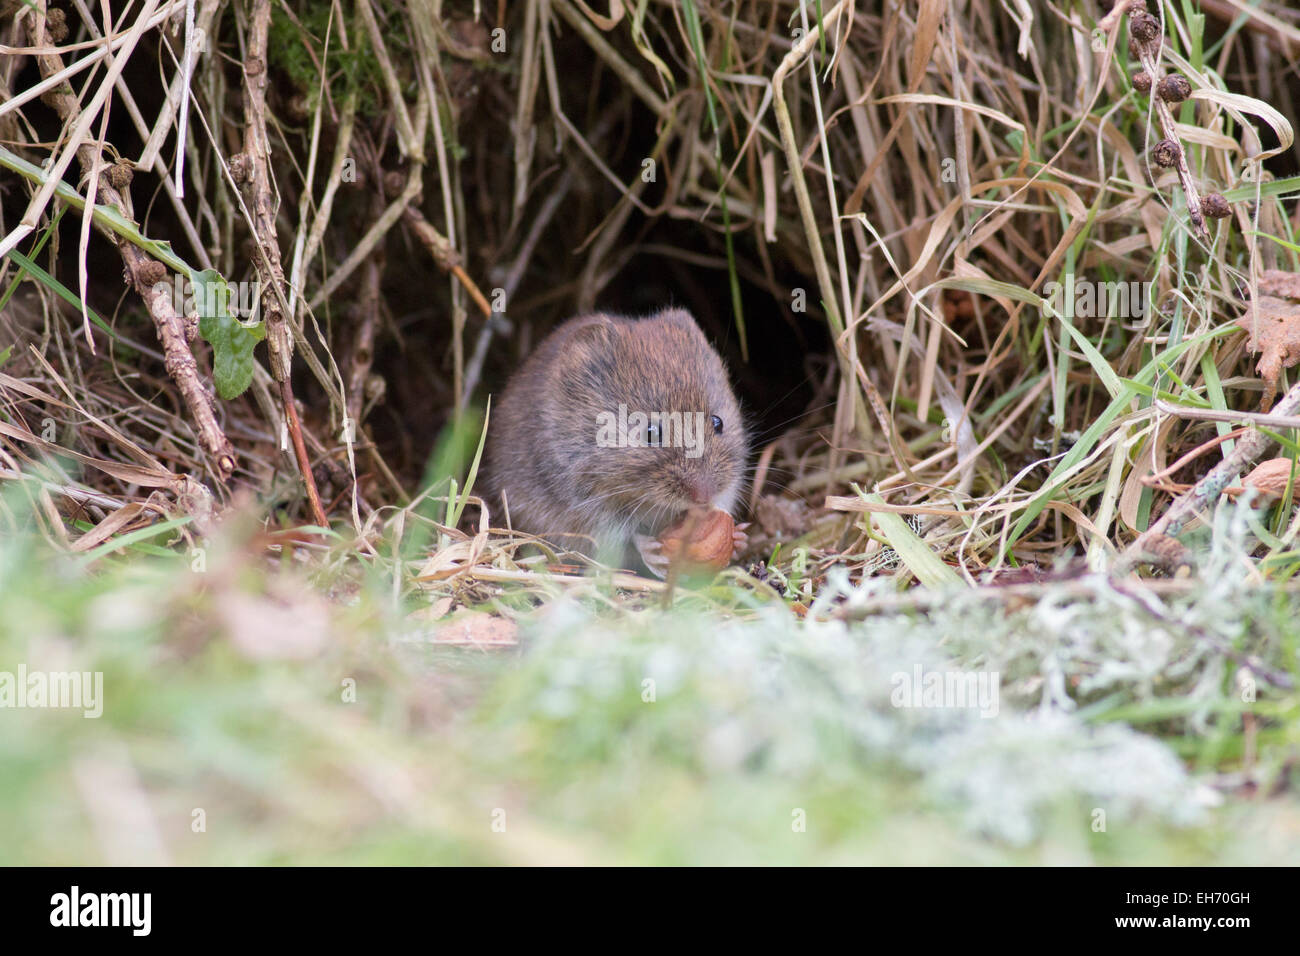 Field vole or short-tailed vole (Microtus agrestis) in the forest, Highlands, Scotland, UK - Stock Image